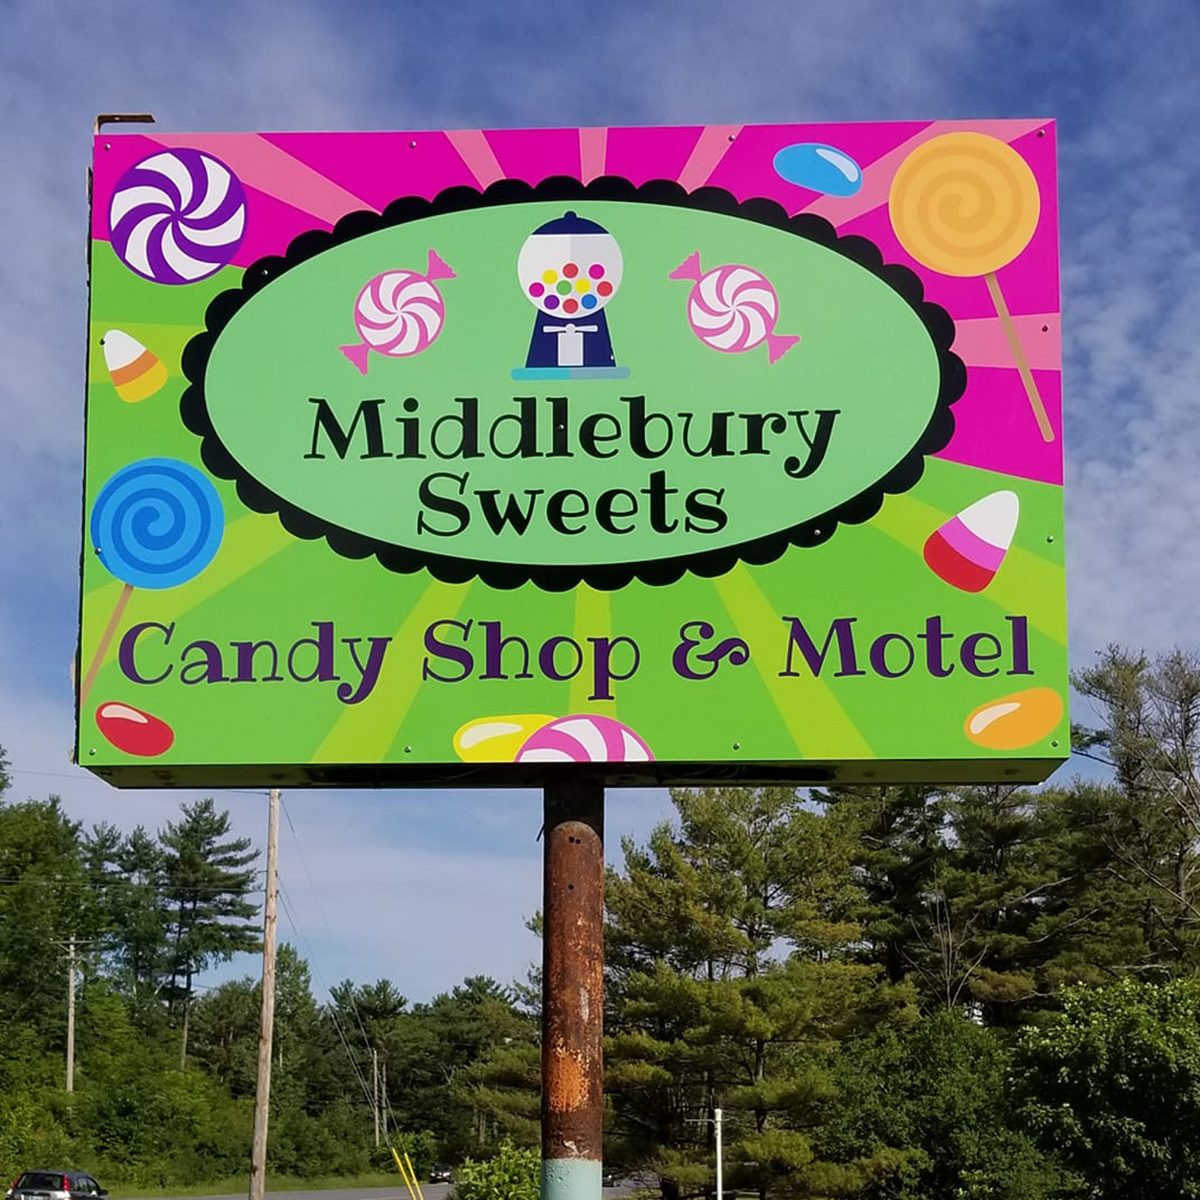 Middlebury Sweets, The best candy shop in every state